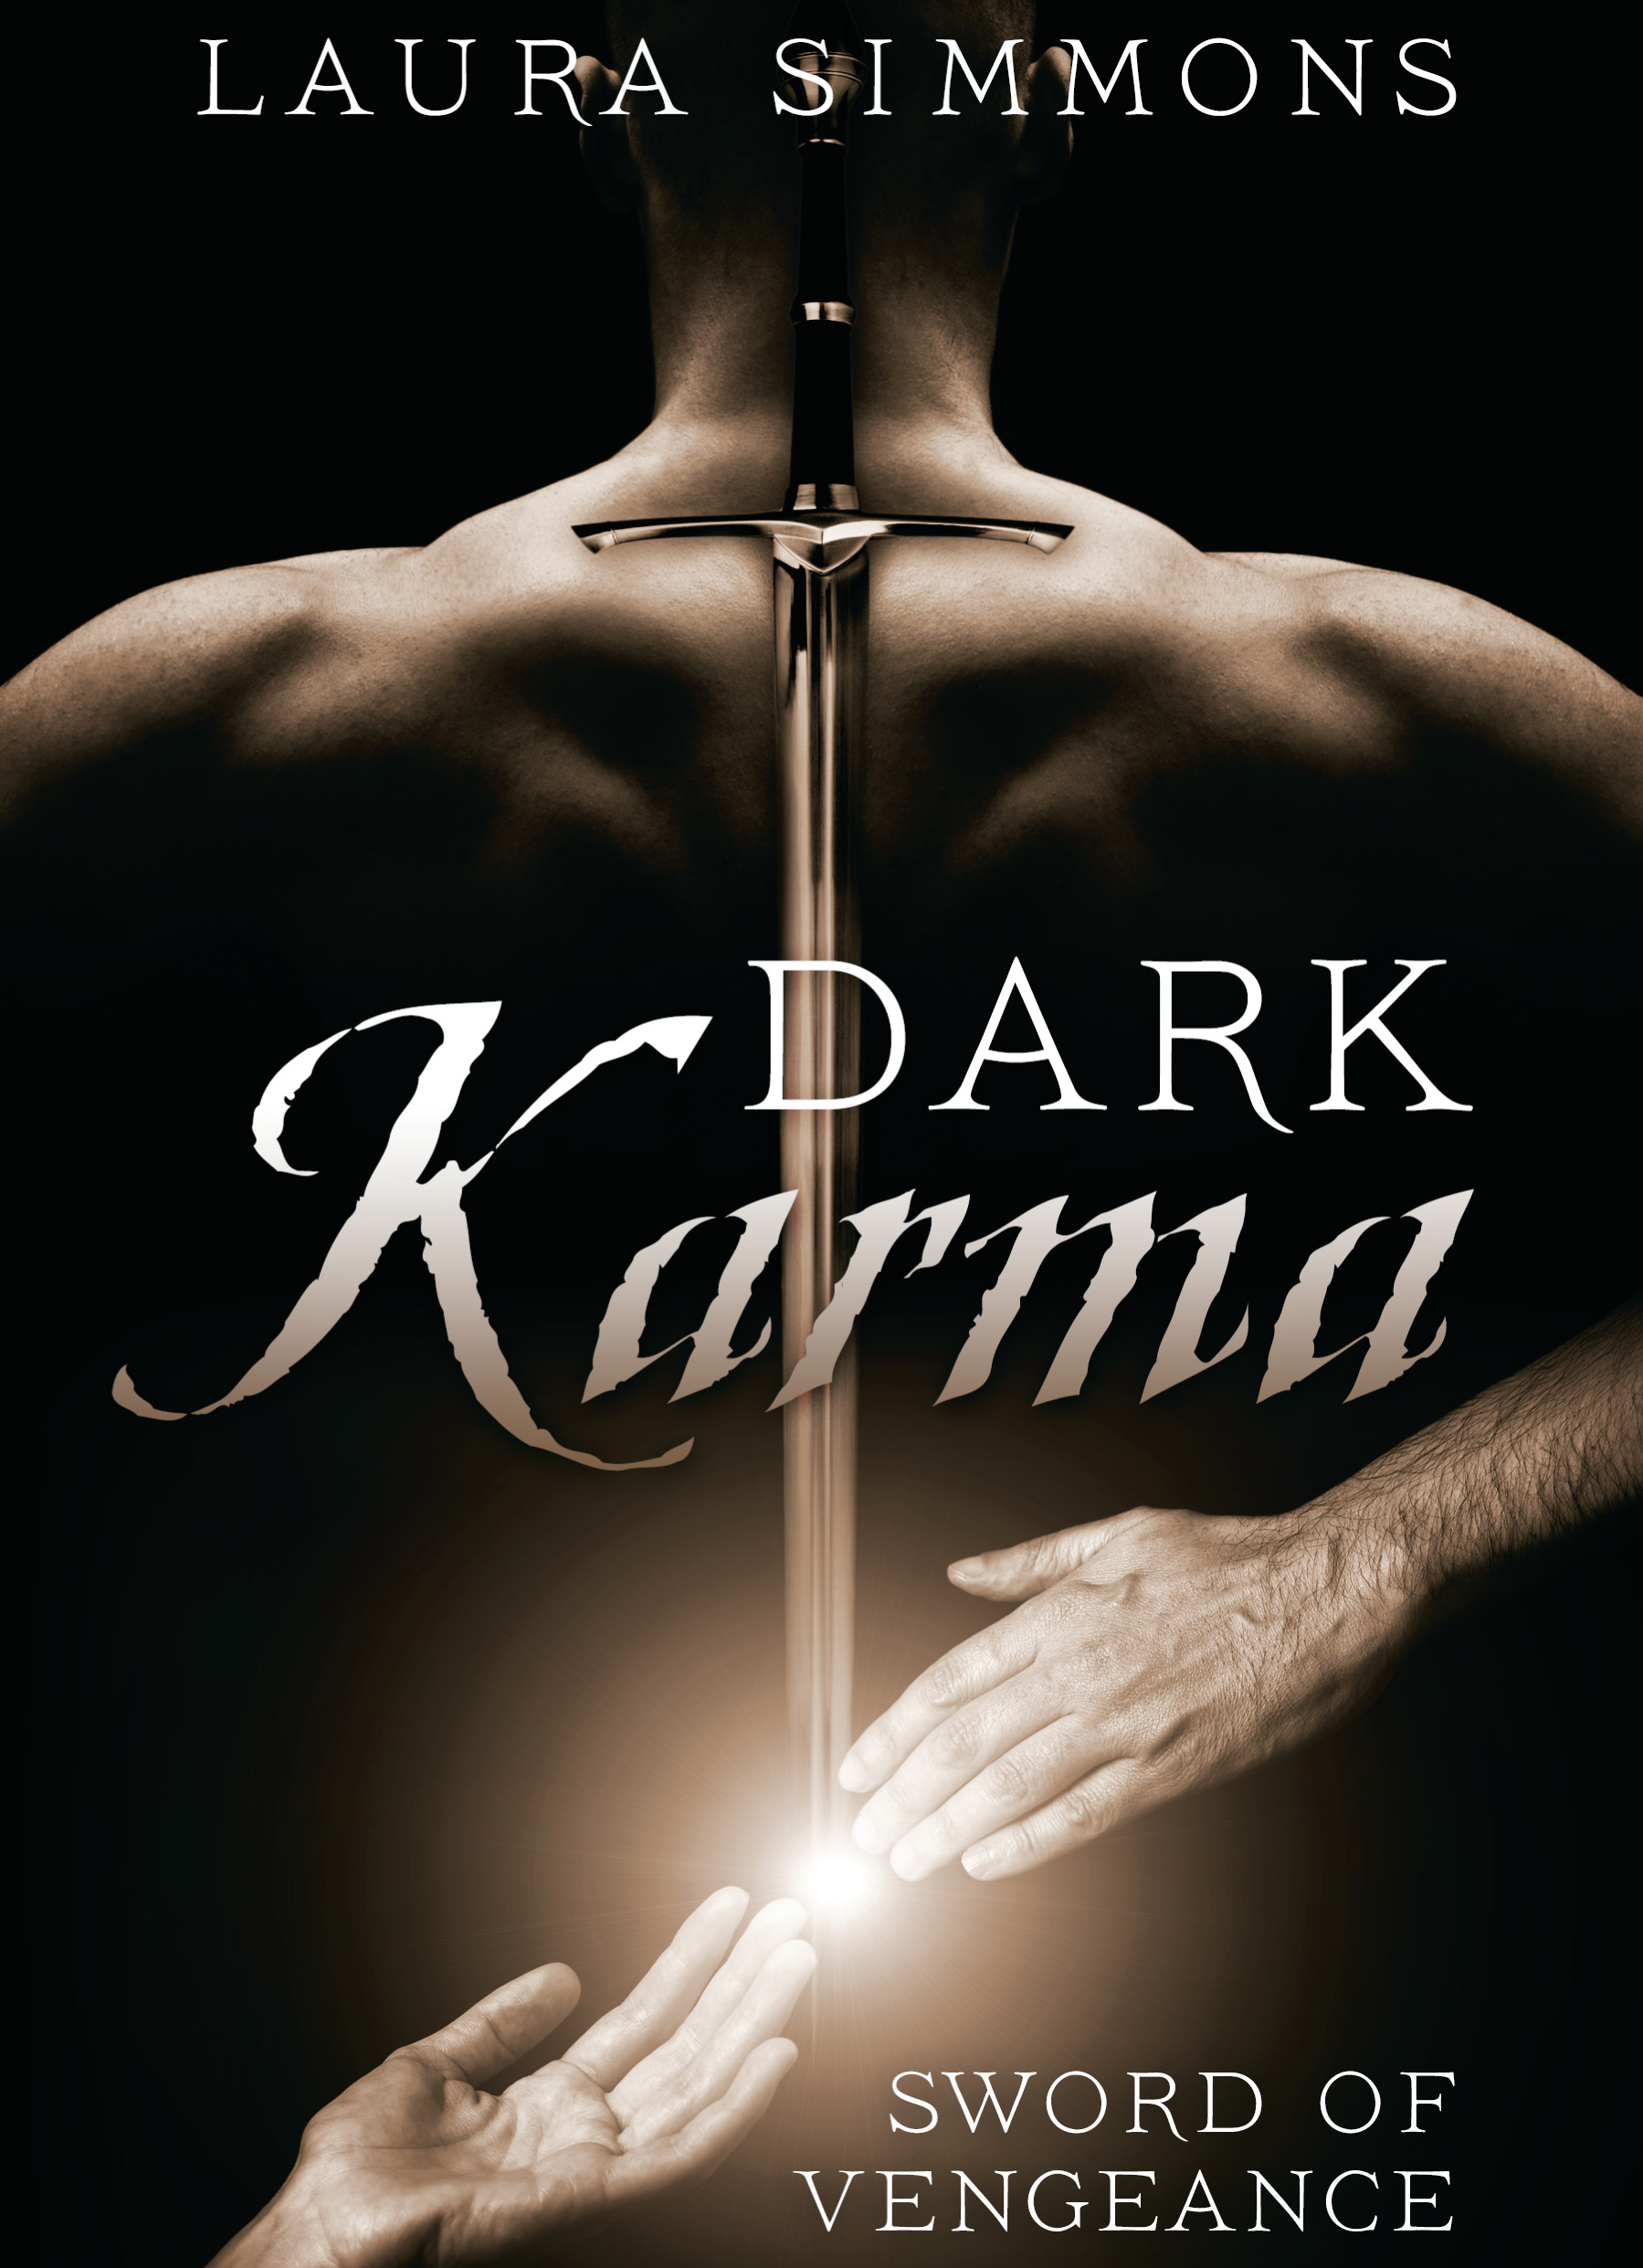 Dark Karma: Sword of Vengeance